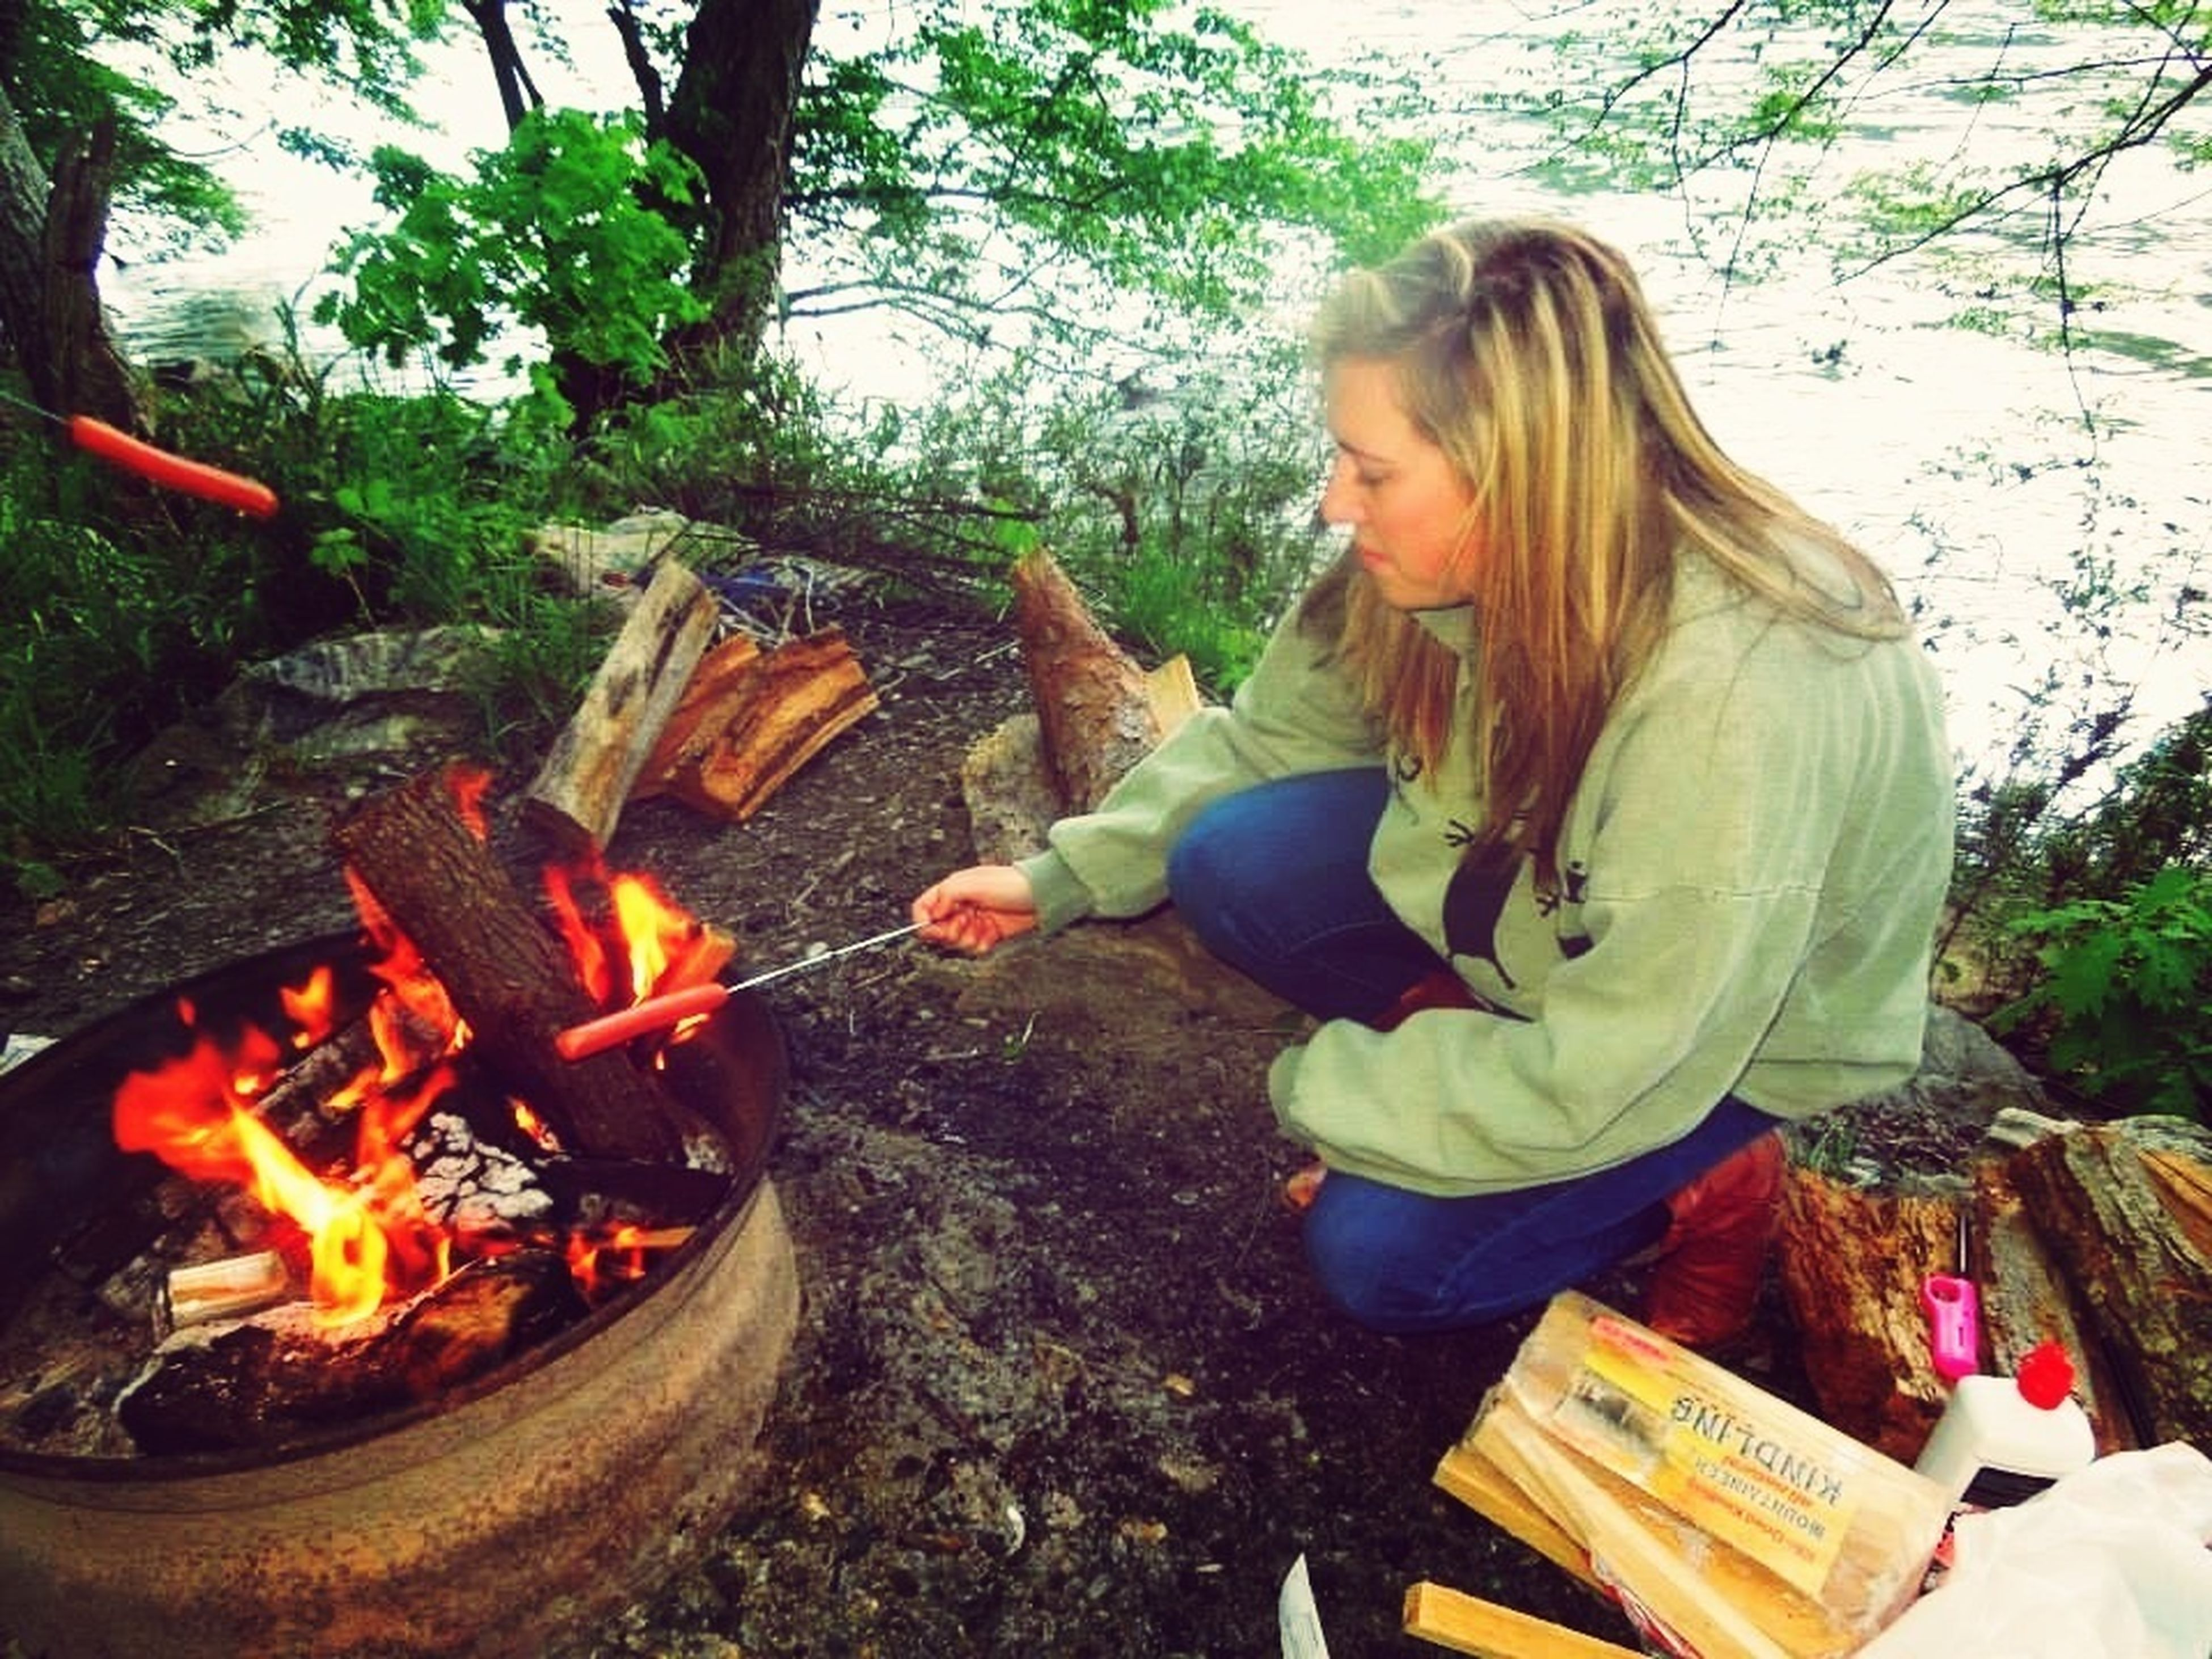 lifestyles, leisure activity, burning, flame, tree, fire - natural phenomenon, sitting, casual clothing, enjoyment, outdoors, vacations, togetherness, full length, men, day, person, heat - temperature, girls